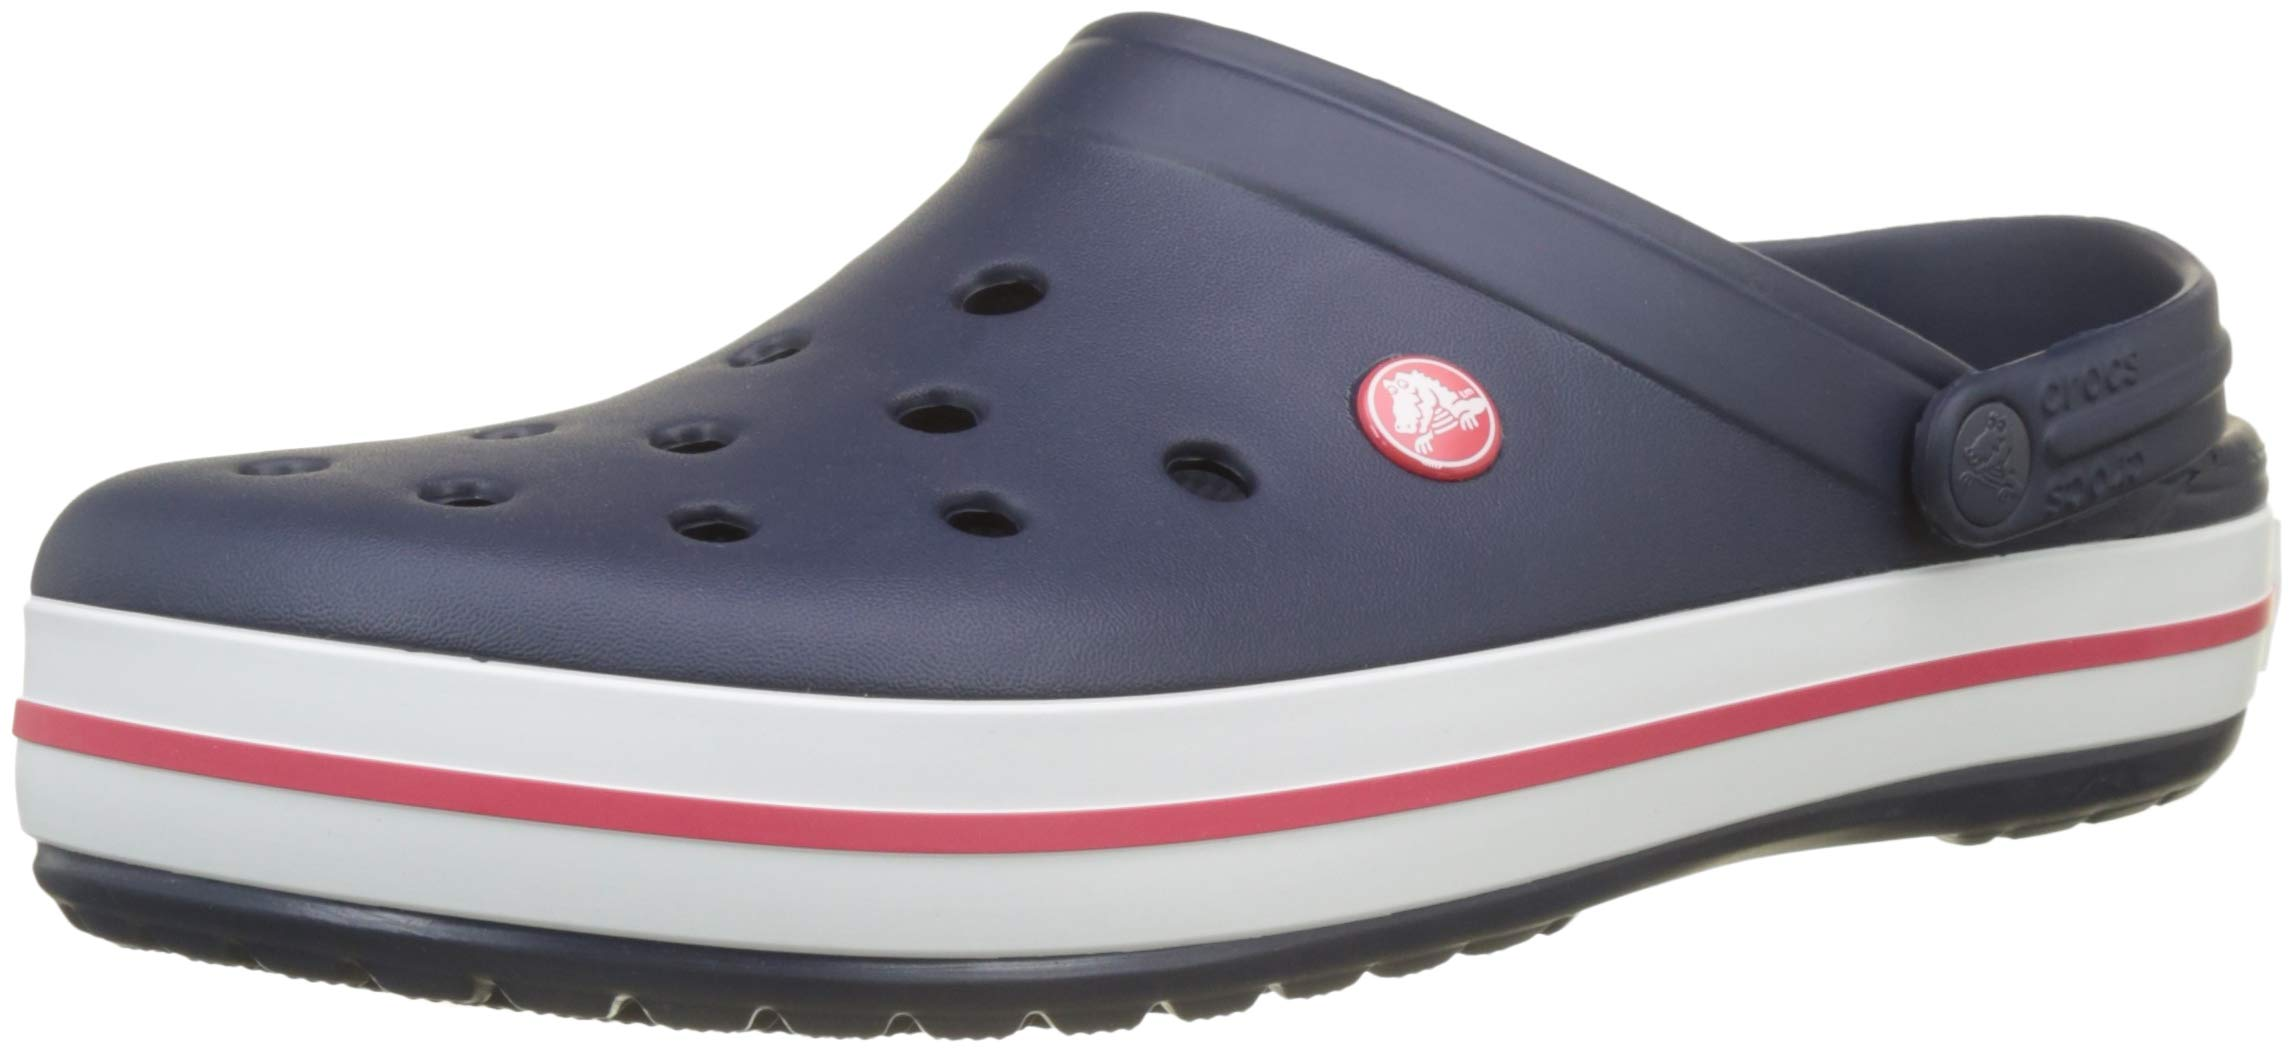 Crocs Unisex Crocband Clog, Navy, 6 US Men / 8 US Women